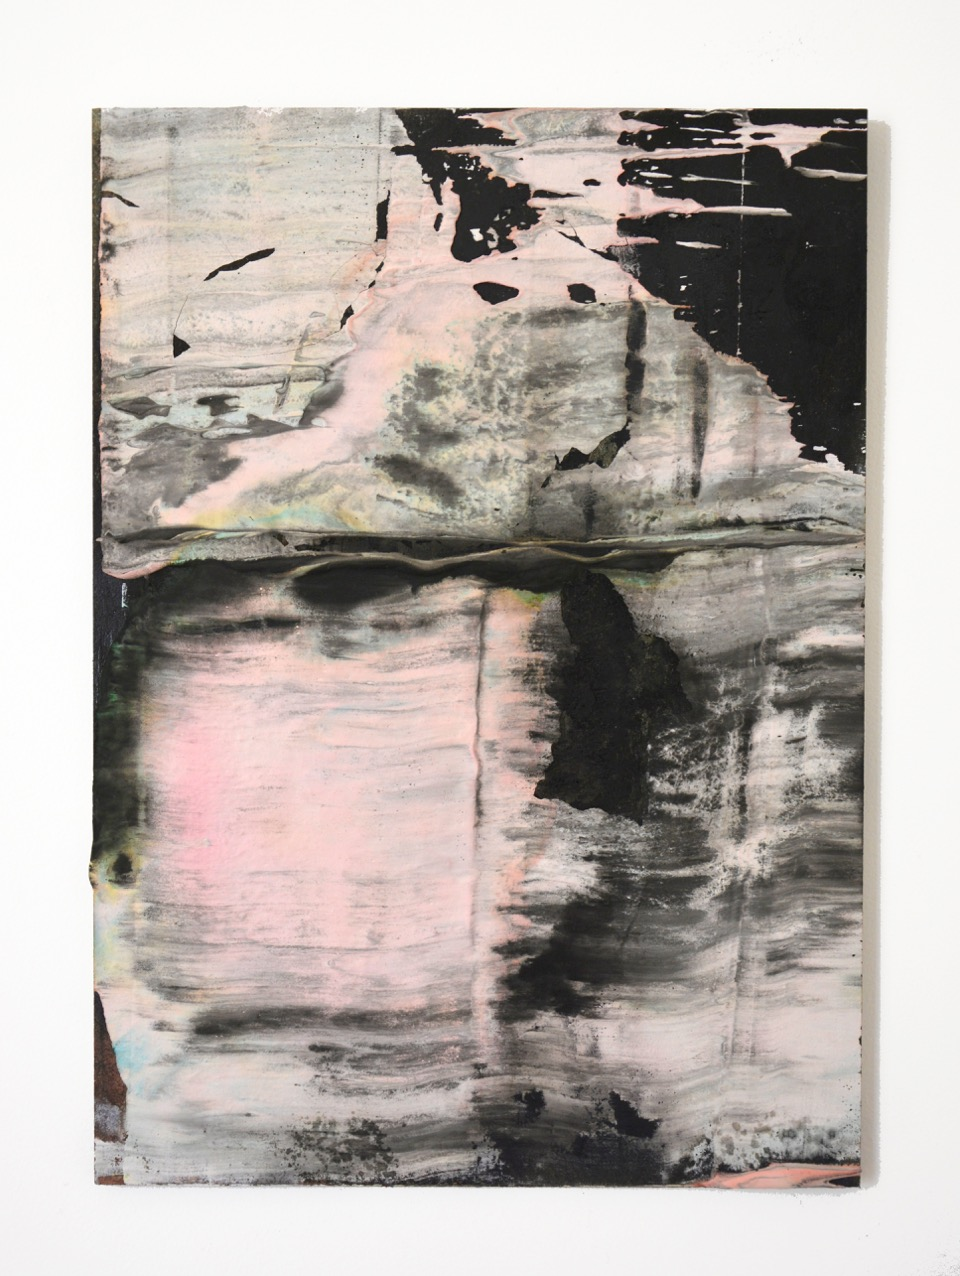 FABRICE CAZENAVE Sliders (16), 2015, Plaster and ink on wood, 41 x 30cm